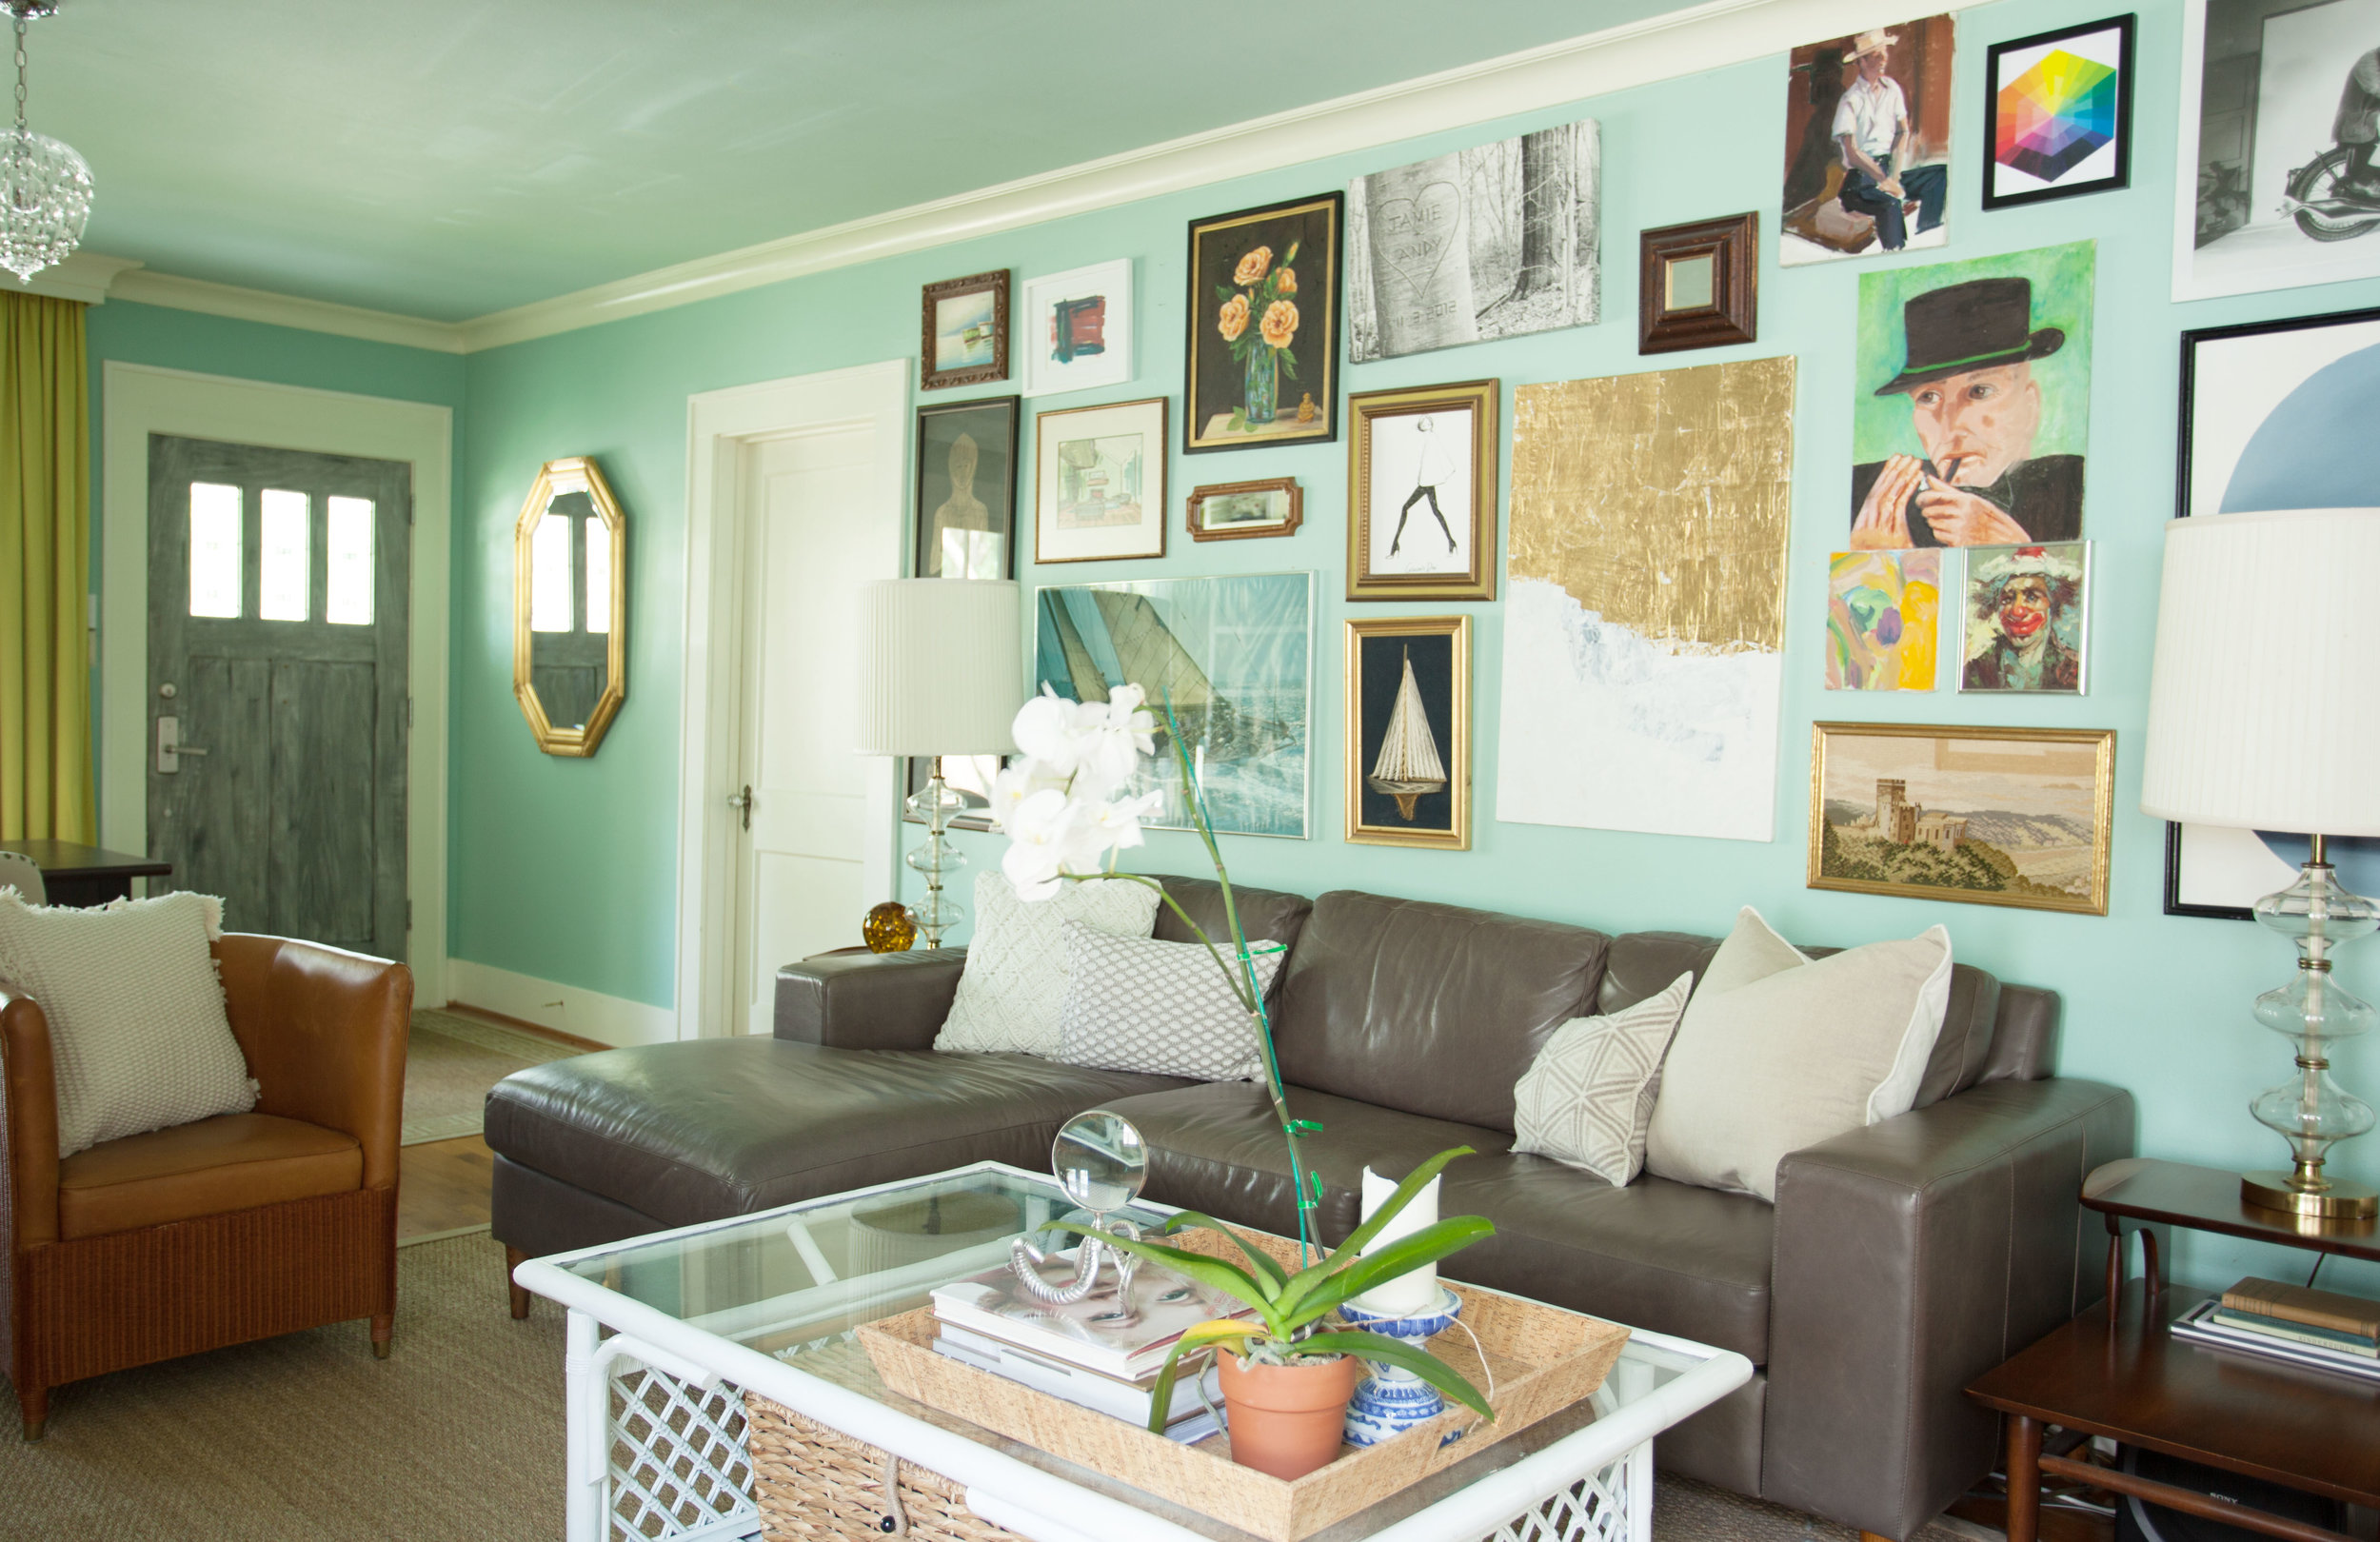 Houston Height's living room of Jamie House of Jamie House Design. Expansive gallery wall. 1920's bungalow modern design